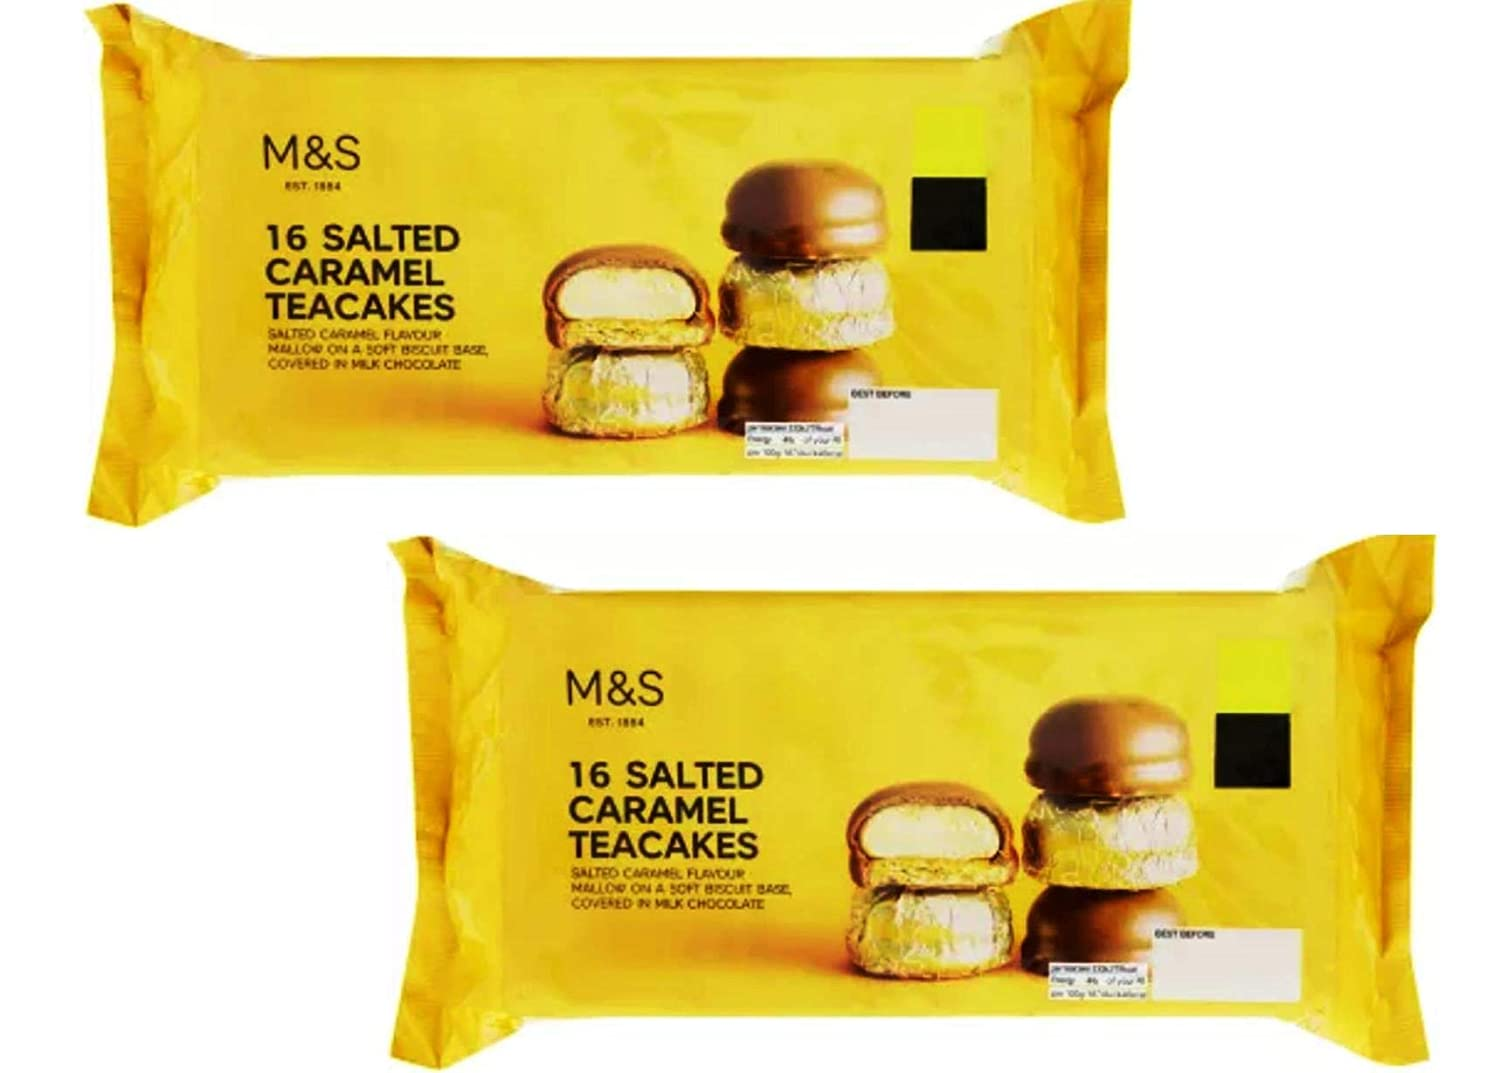 Marks And Spencer 32 Salted Caramel Teacakes 16 X 2 Packs Tea Cakes 2 X 280g Ms Food